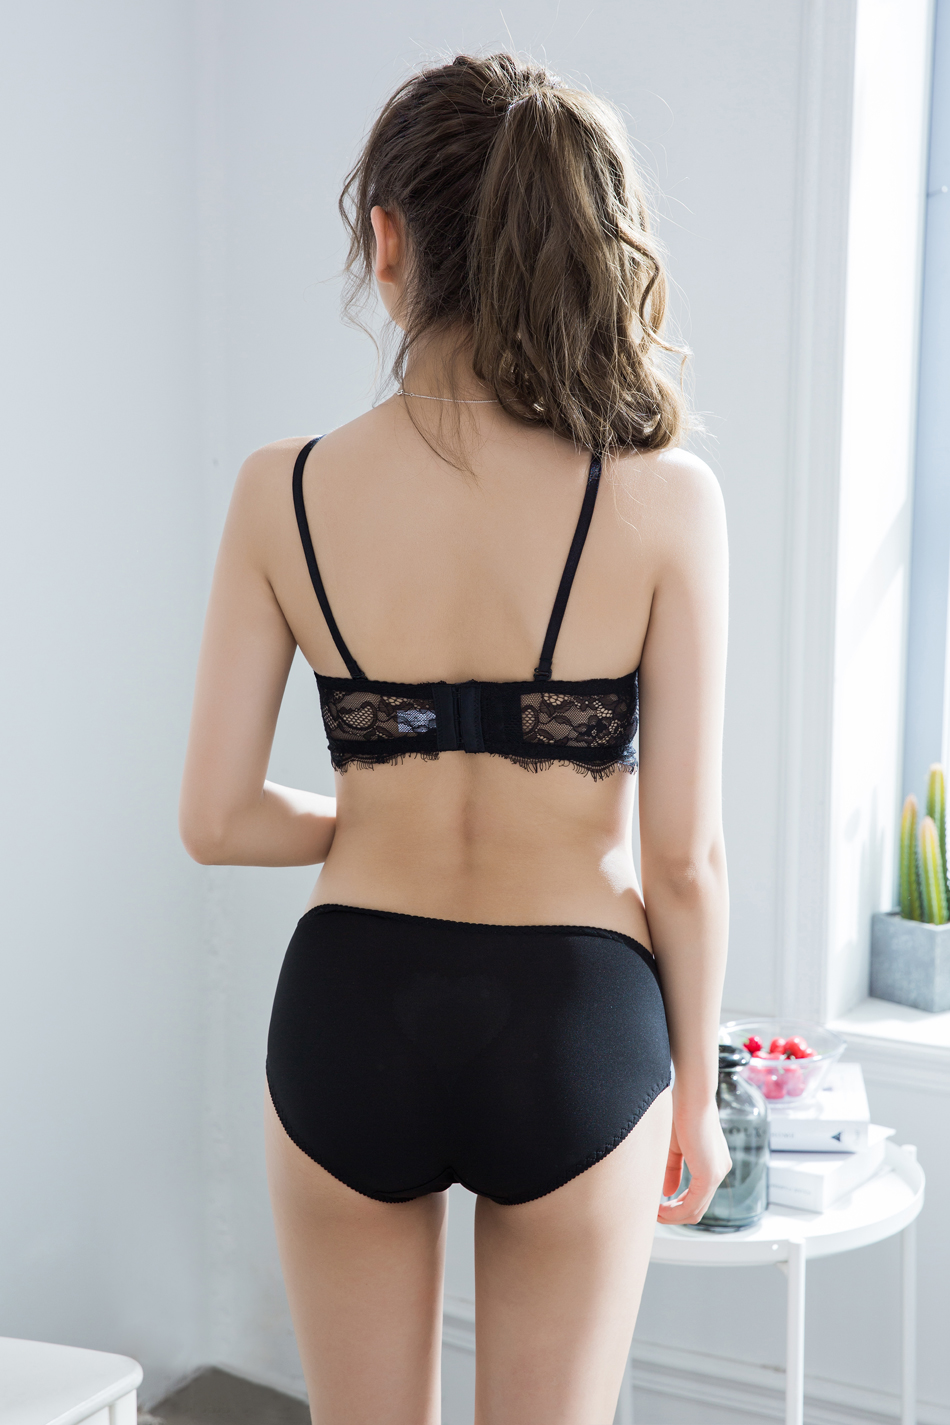 MIGNMO 2017 Hot Sale Luxury Square Cup Brand Sexy Intimates Lace Eyelashes Floral Push Up Bra Set Underwear Sexy Women Bra Panty()